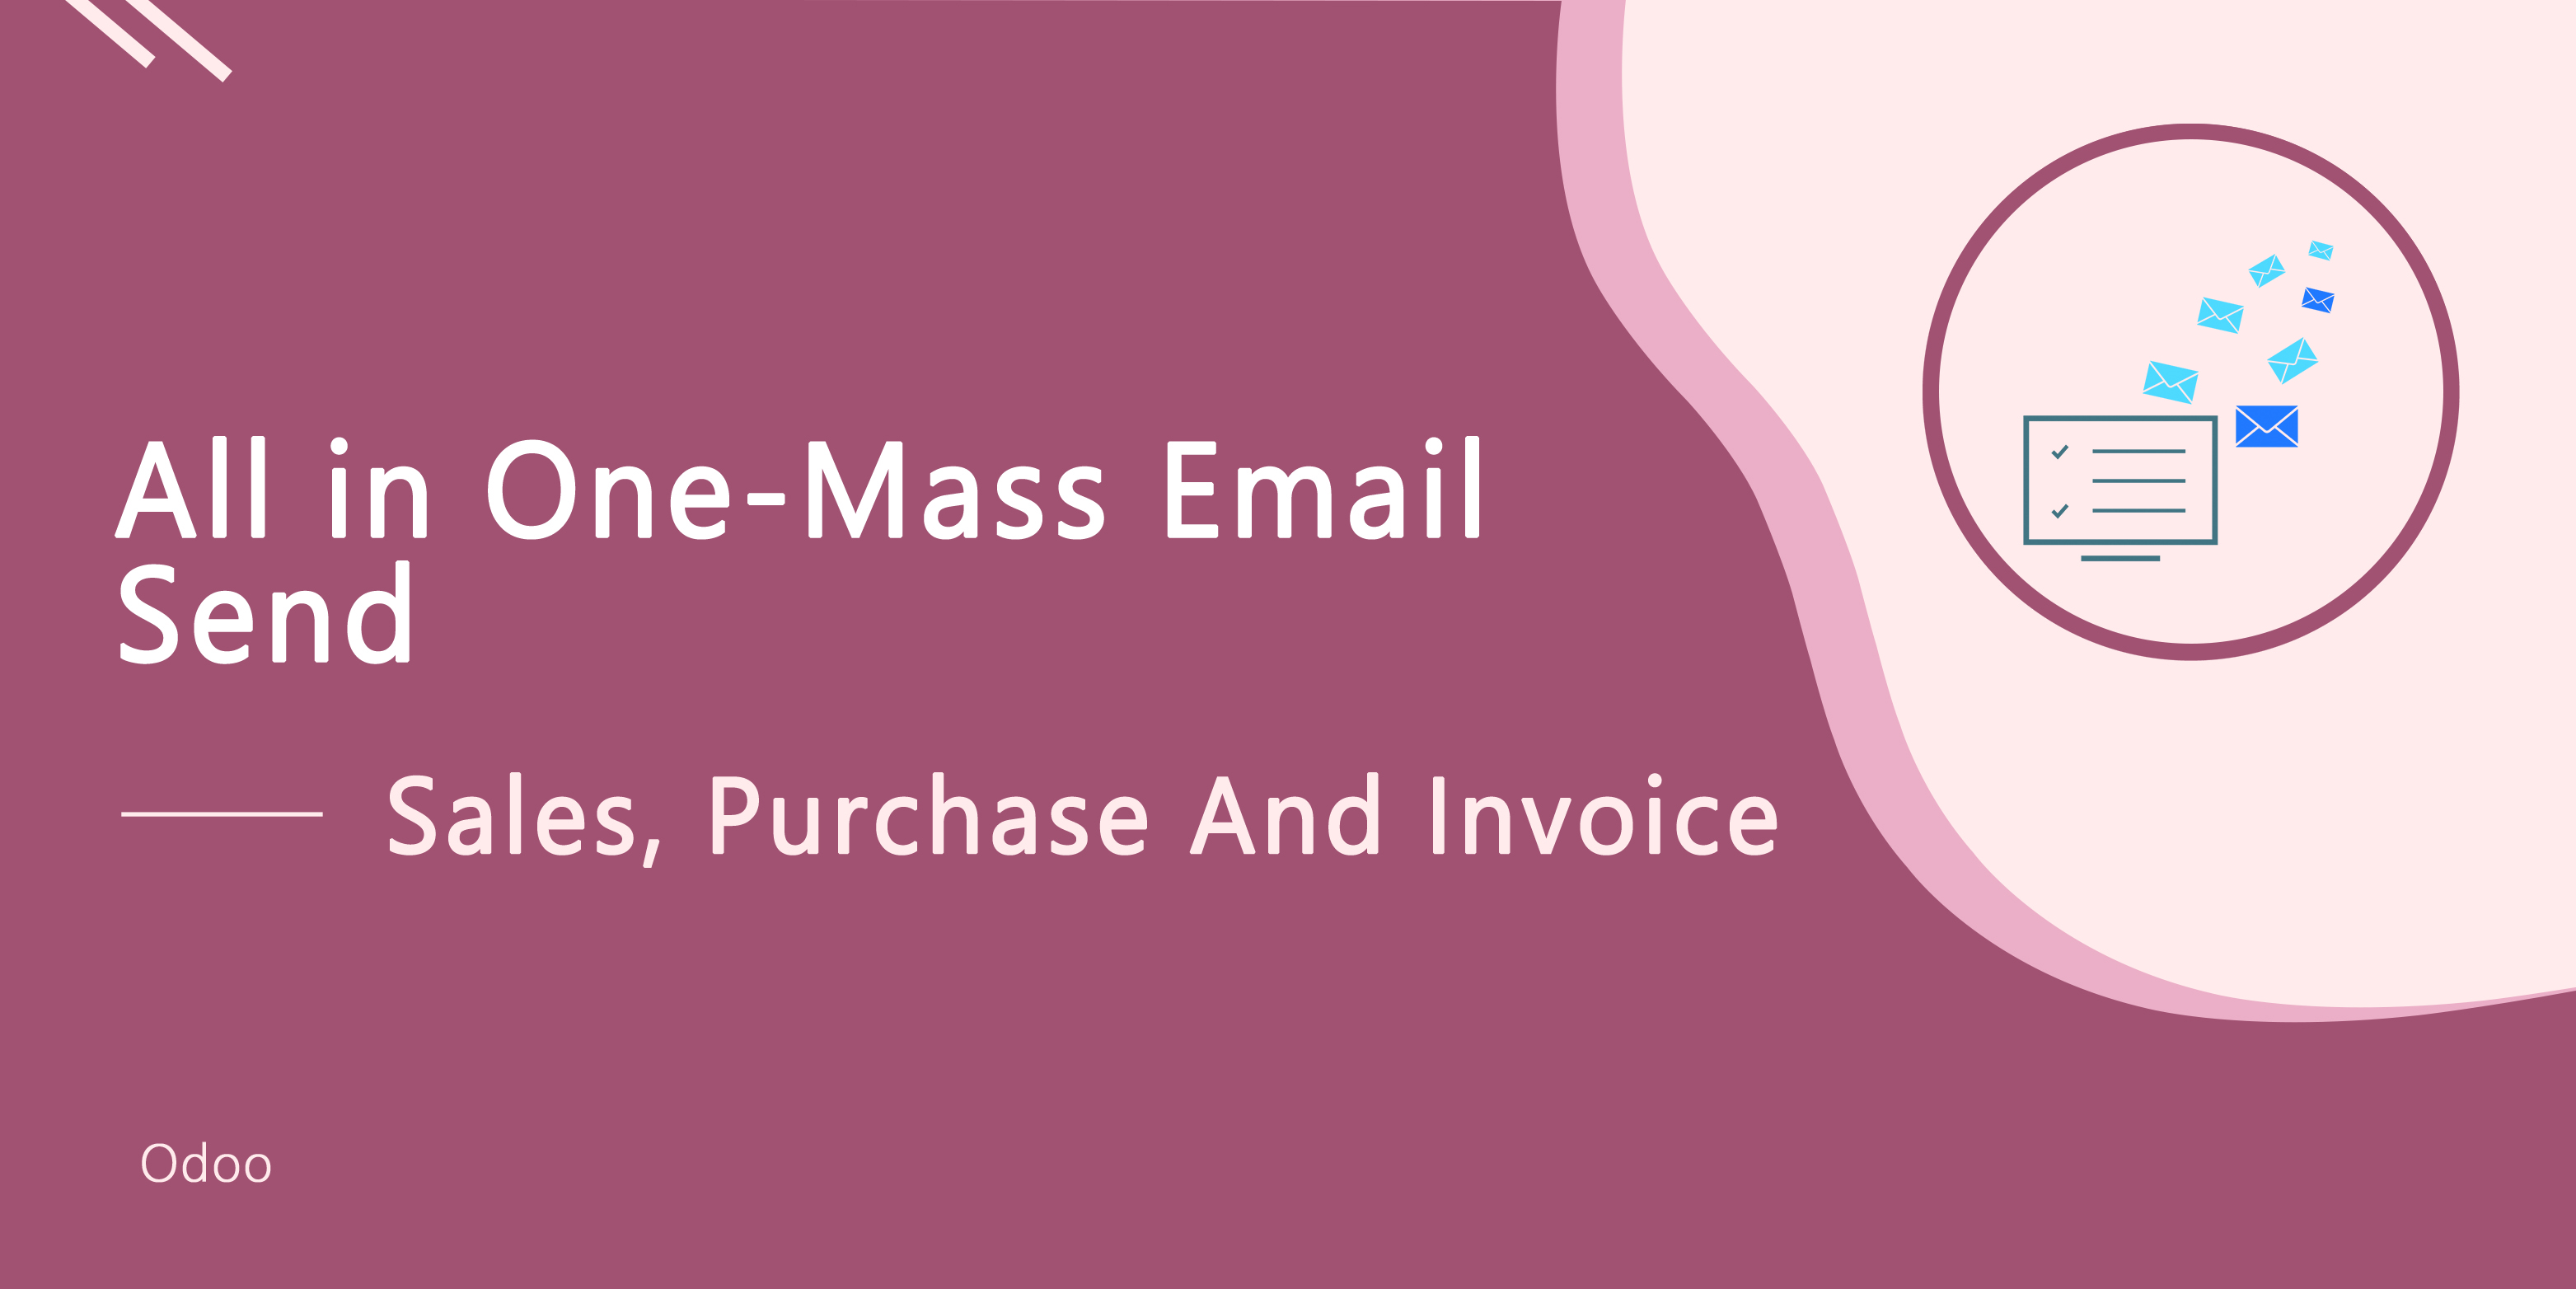 All in one - Mass Email Send